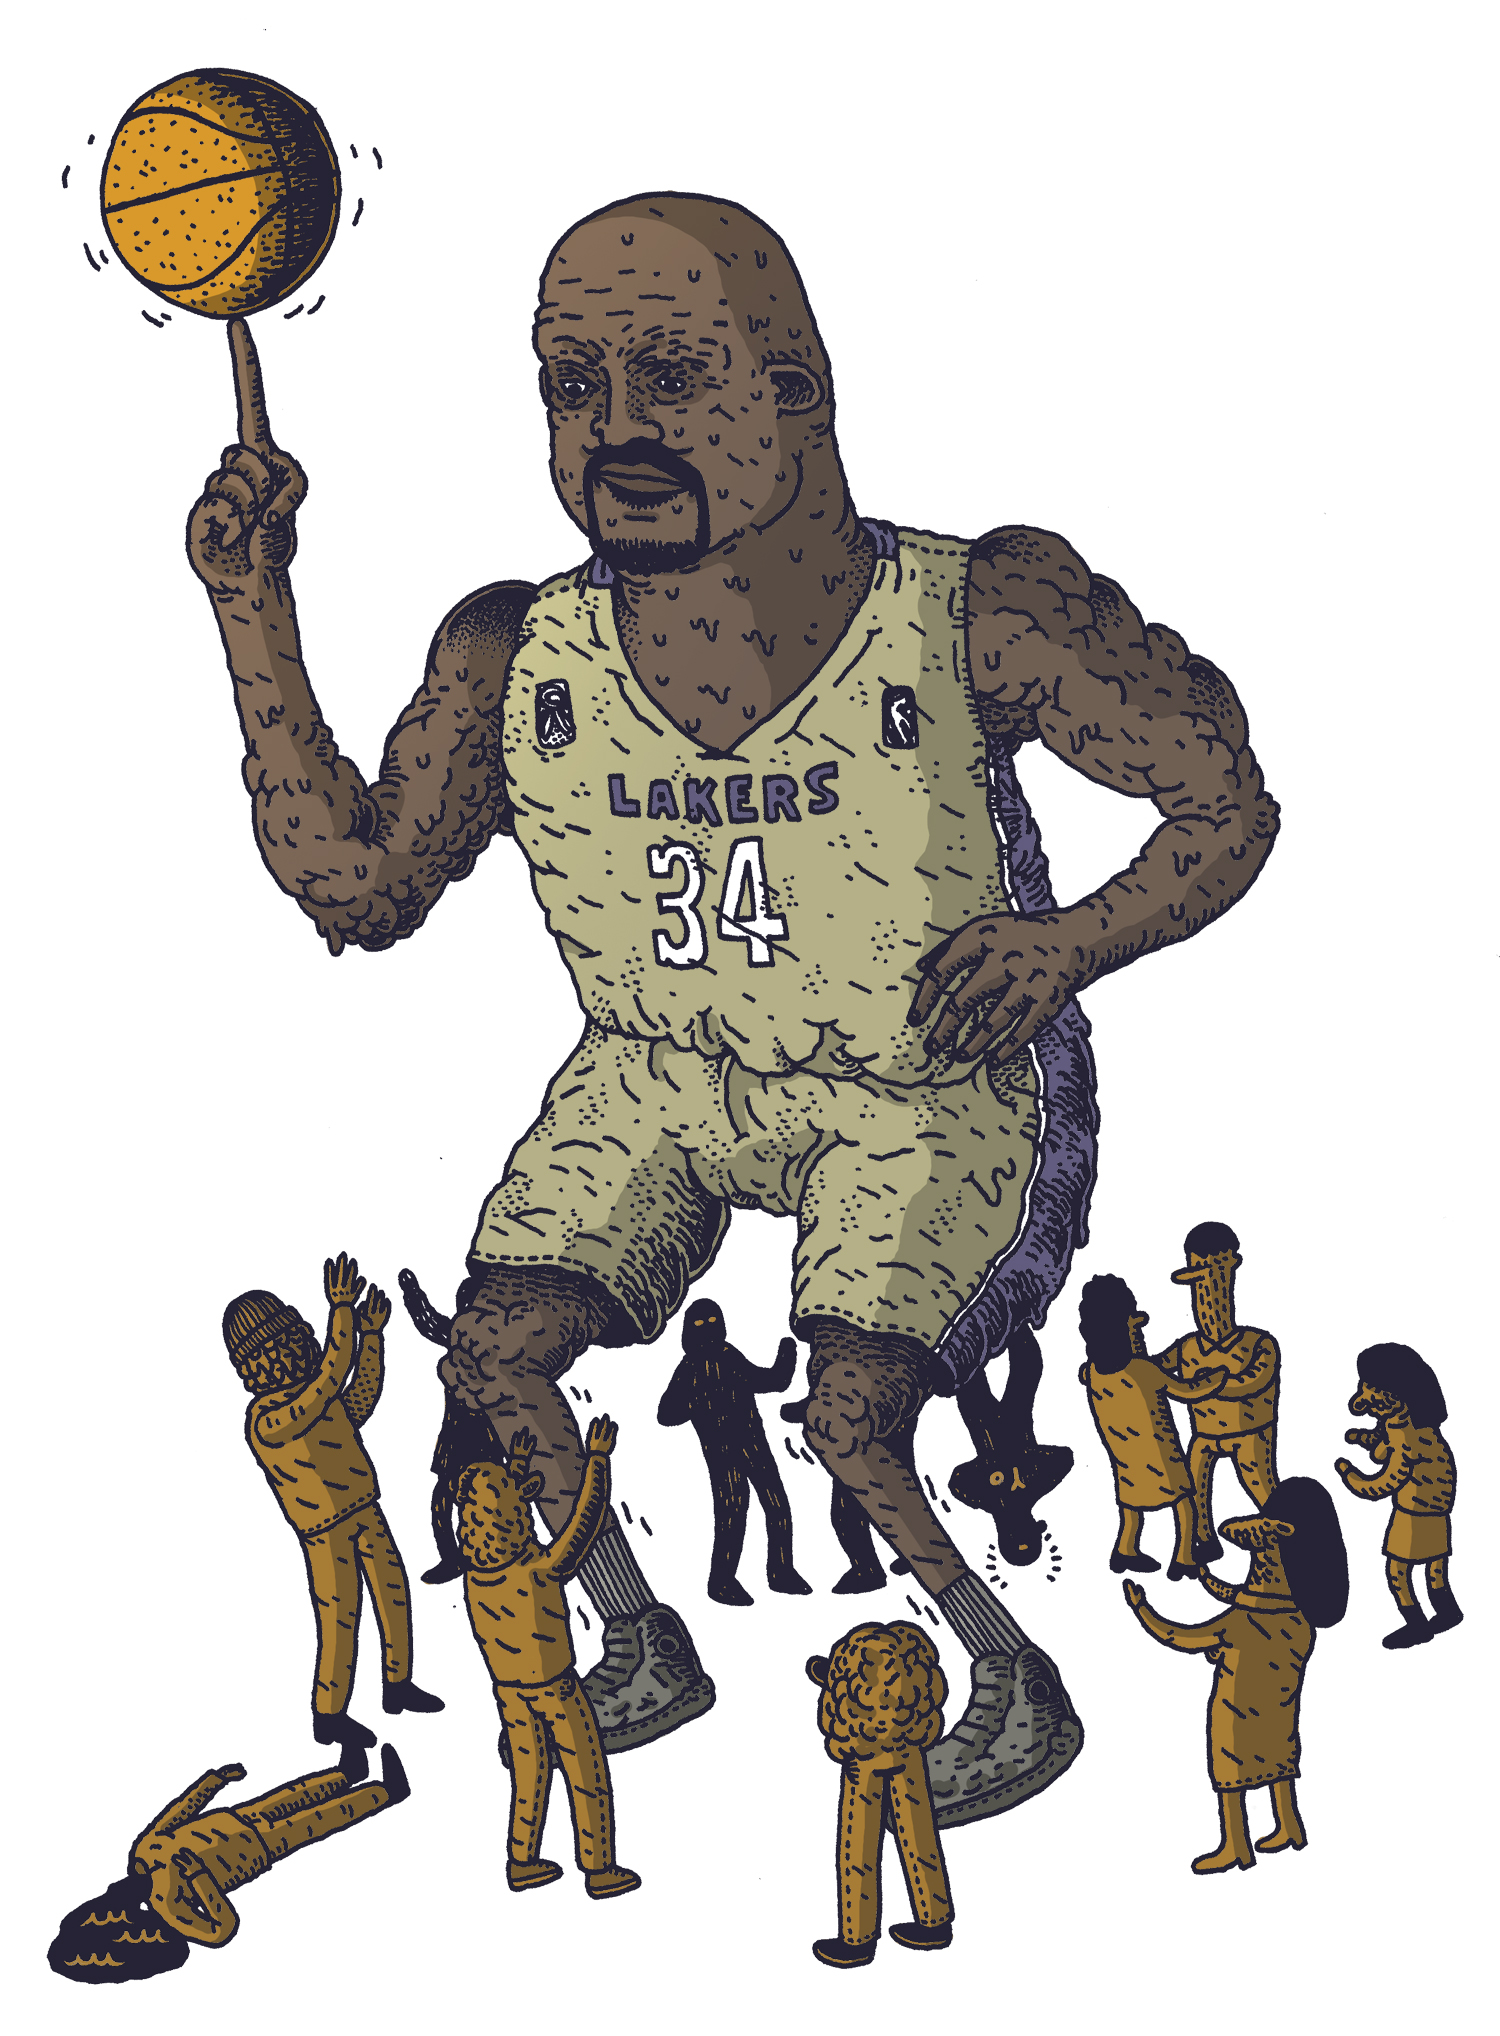 Dance Like Shaquille O'Neal (Alessandro Ripane)